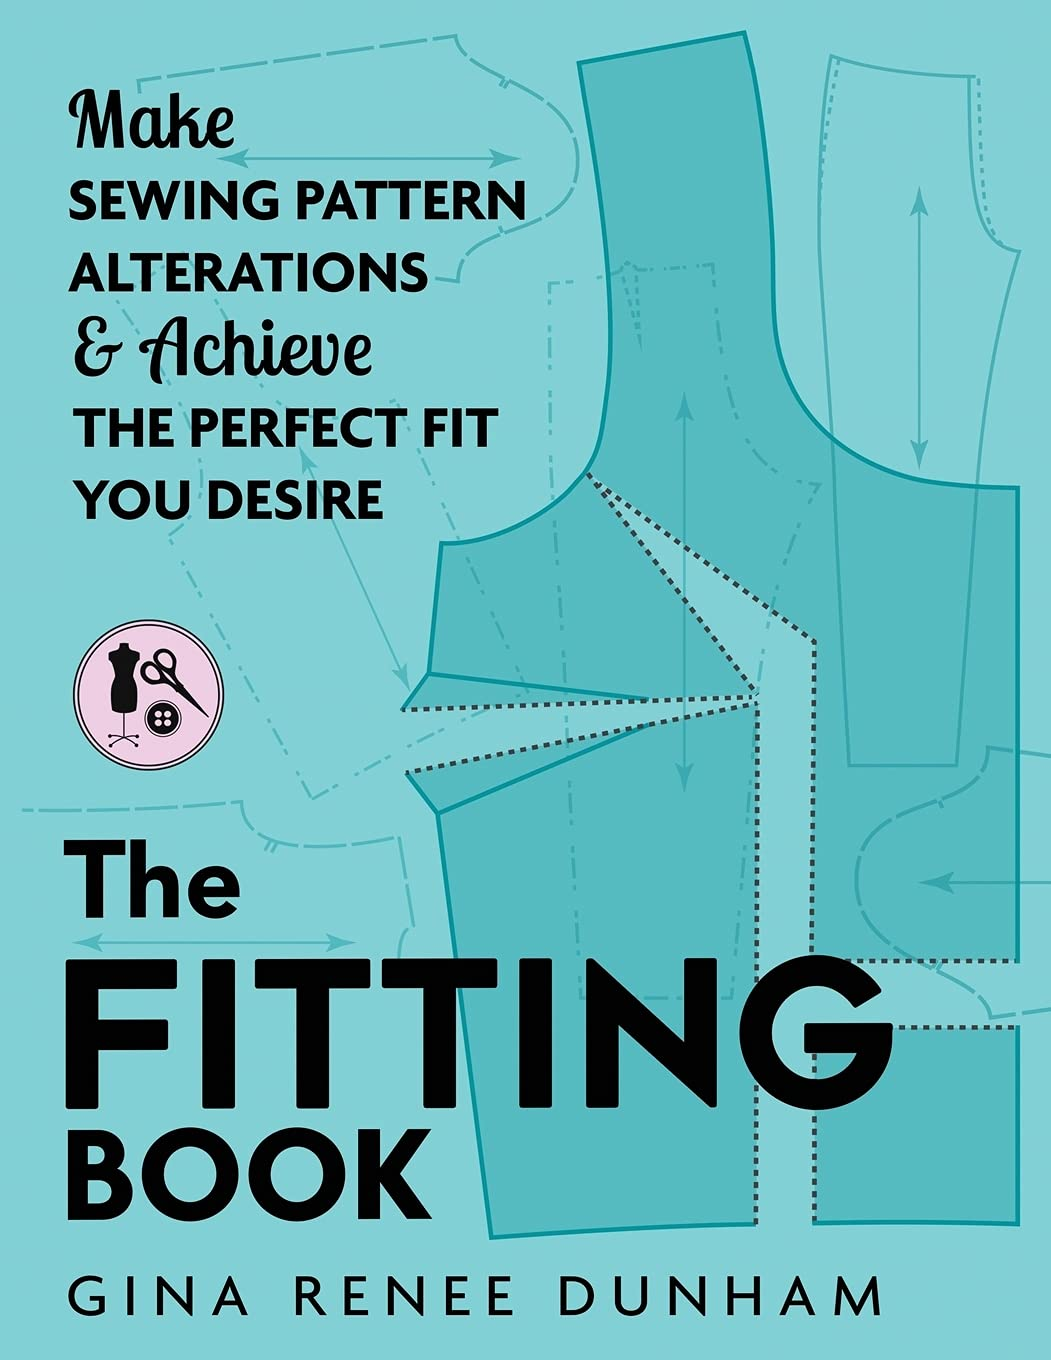 The Fitting Book: Make Sewing Pattern Alterations & Achieve the Perfect Fit You Desire